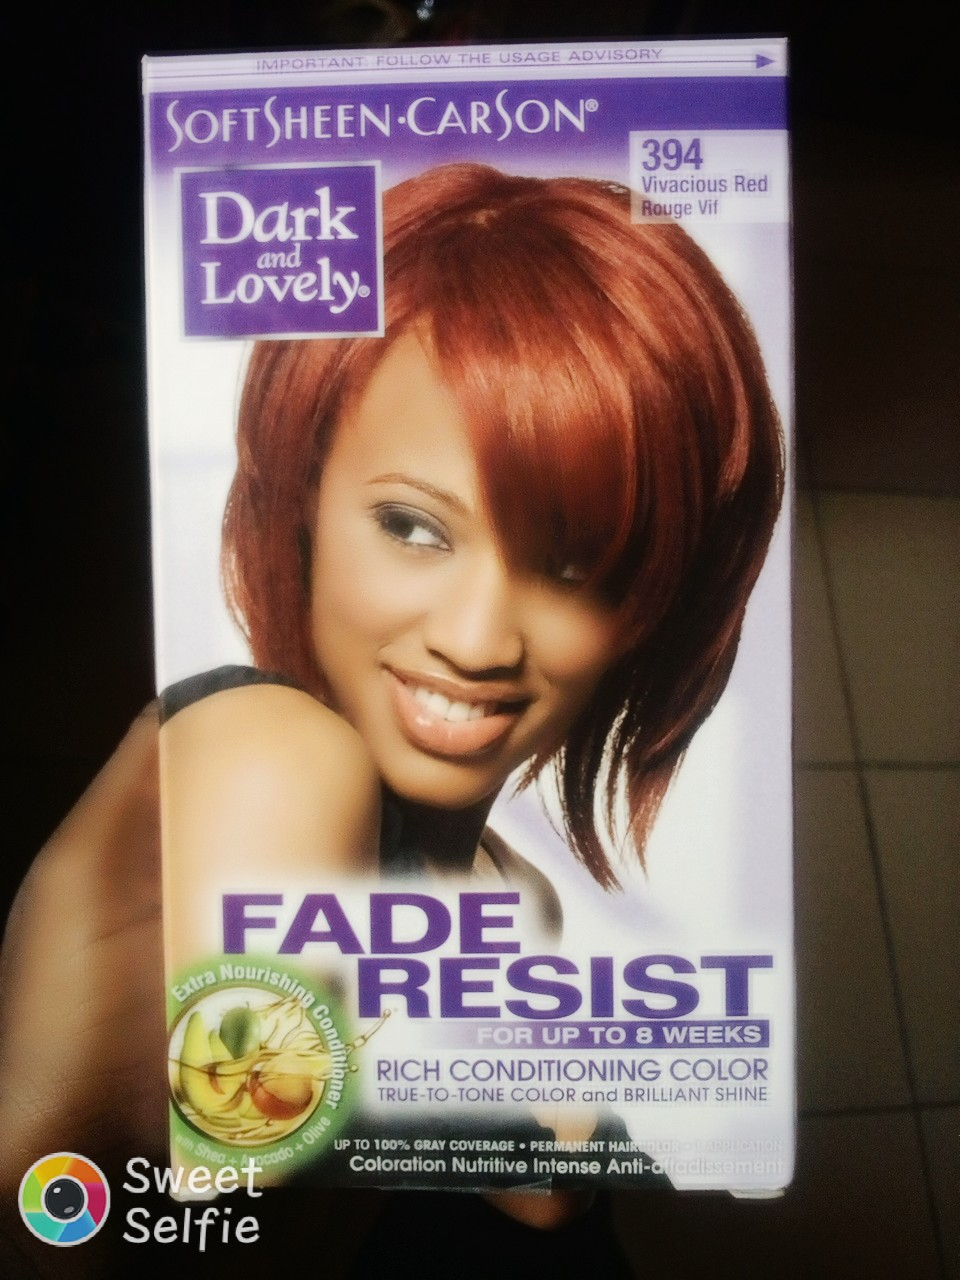 Care For Growth By Juditherese From Black To Red My Hair Dye